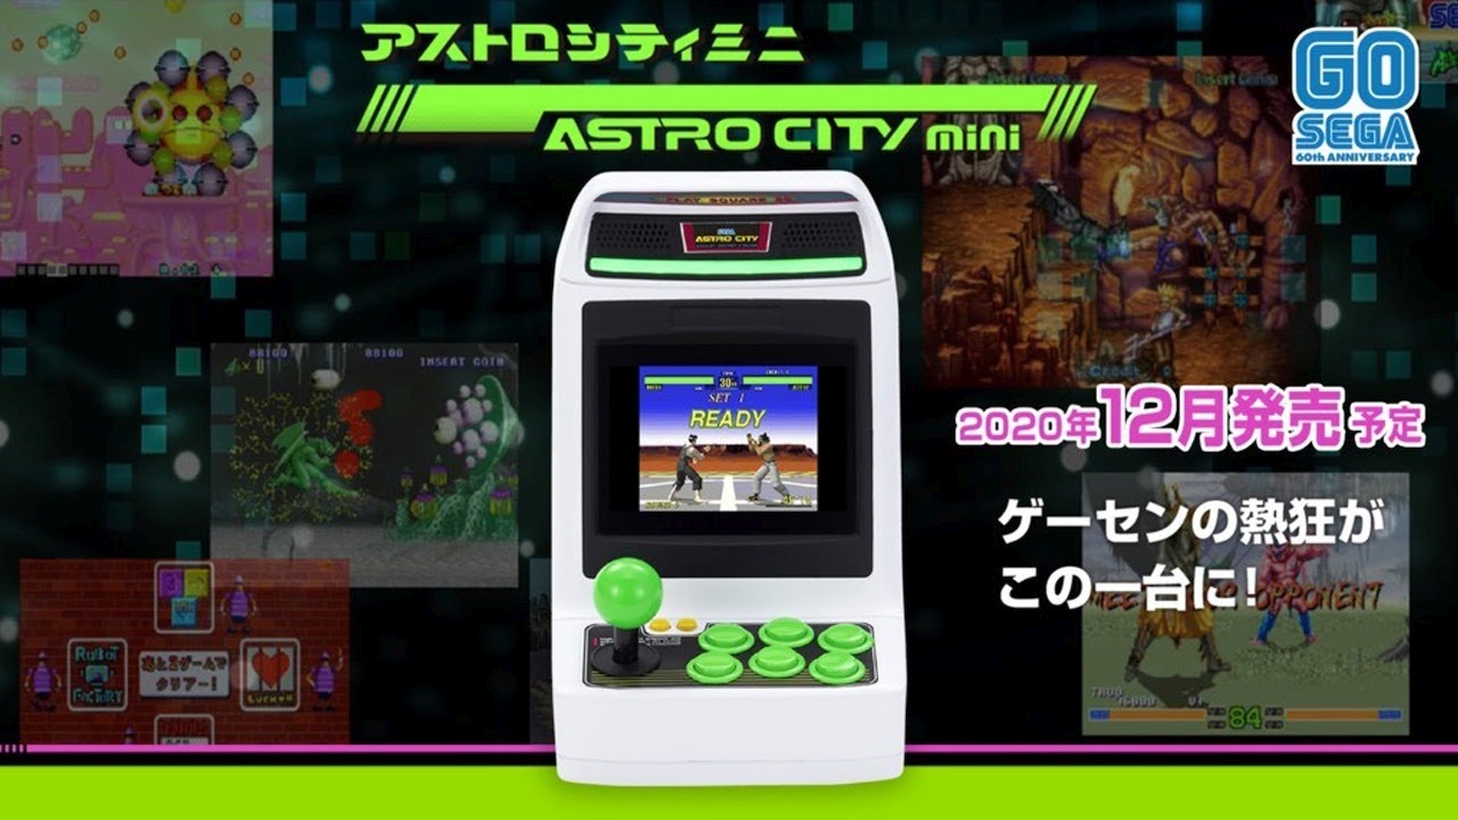 Sega Announces Astro City Mini Arcade Cabinet Packed With 36 Retro Games For Japan